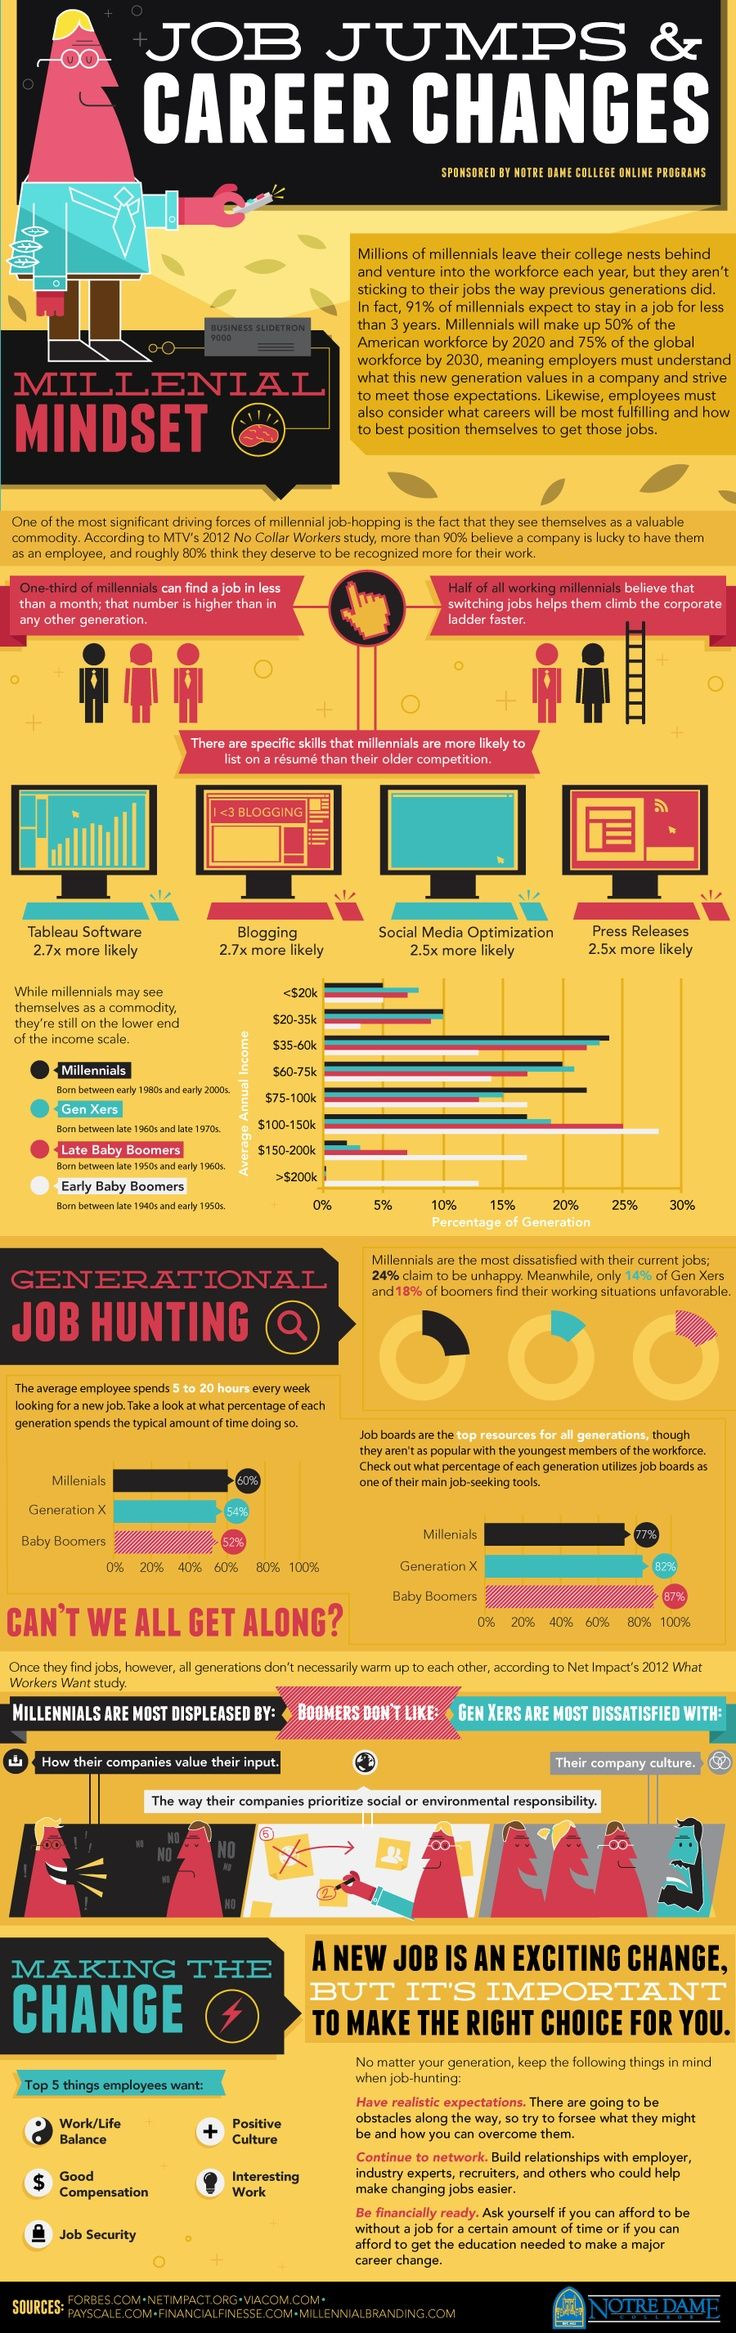 best ideas about switching careers sample resume job jumps and career changes the millennial mindset infographic